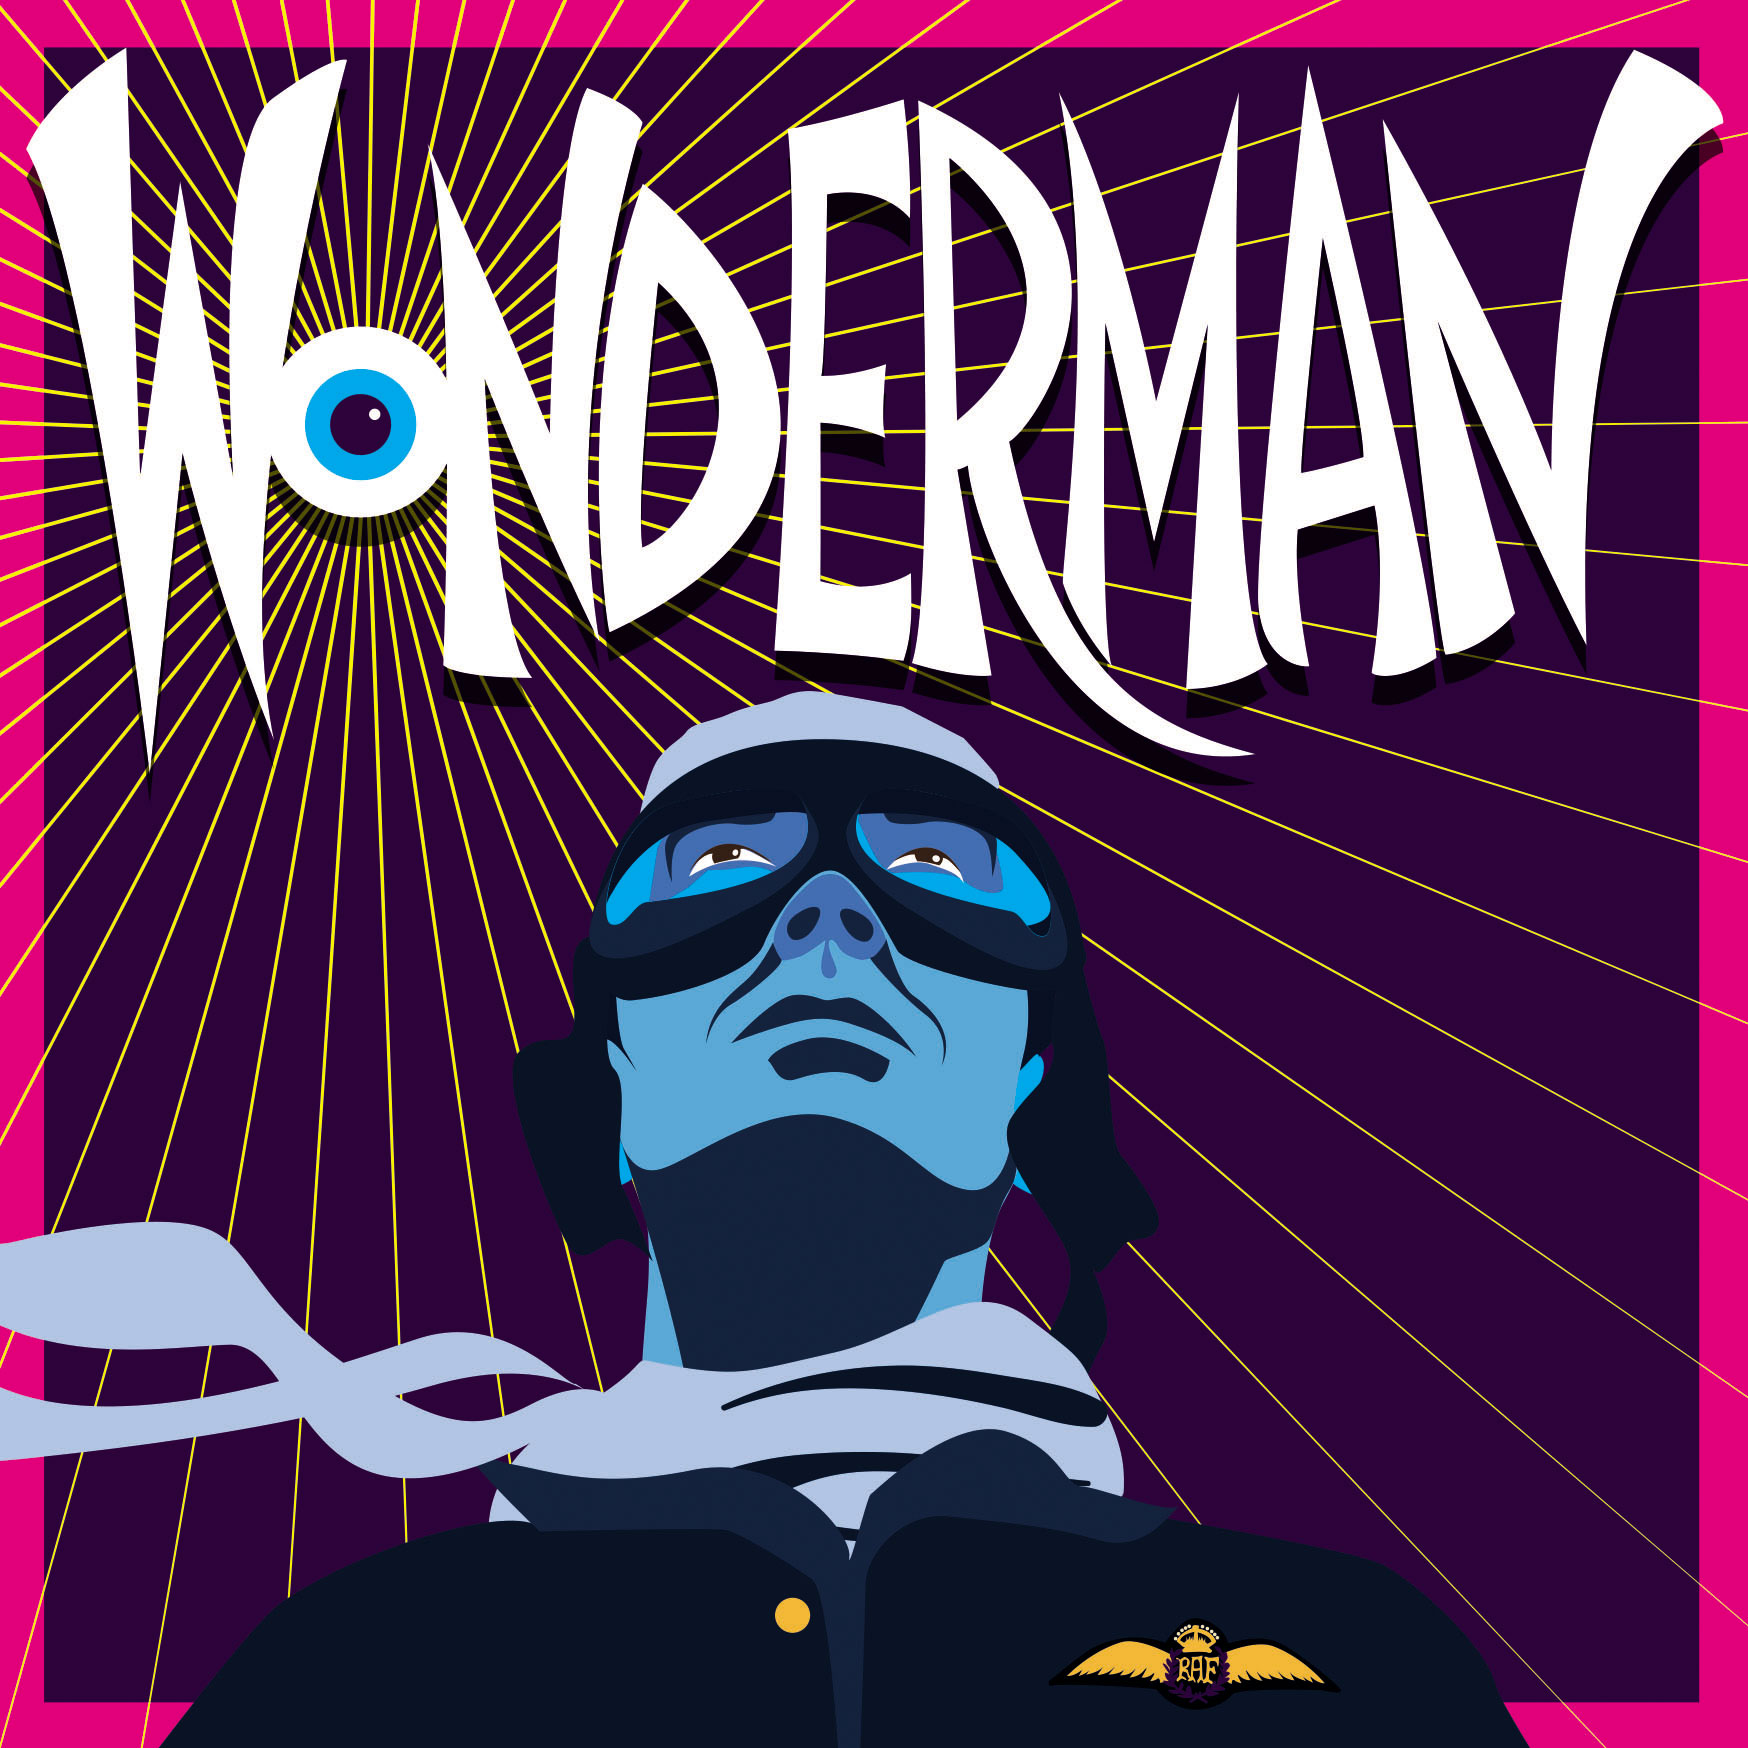 wonderman_square